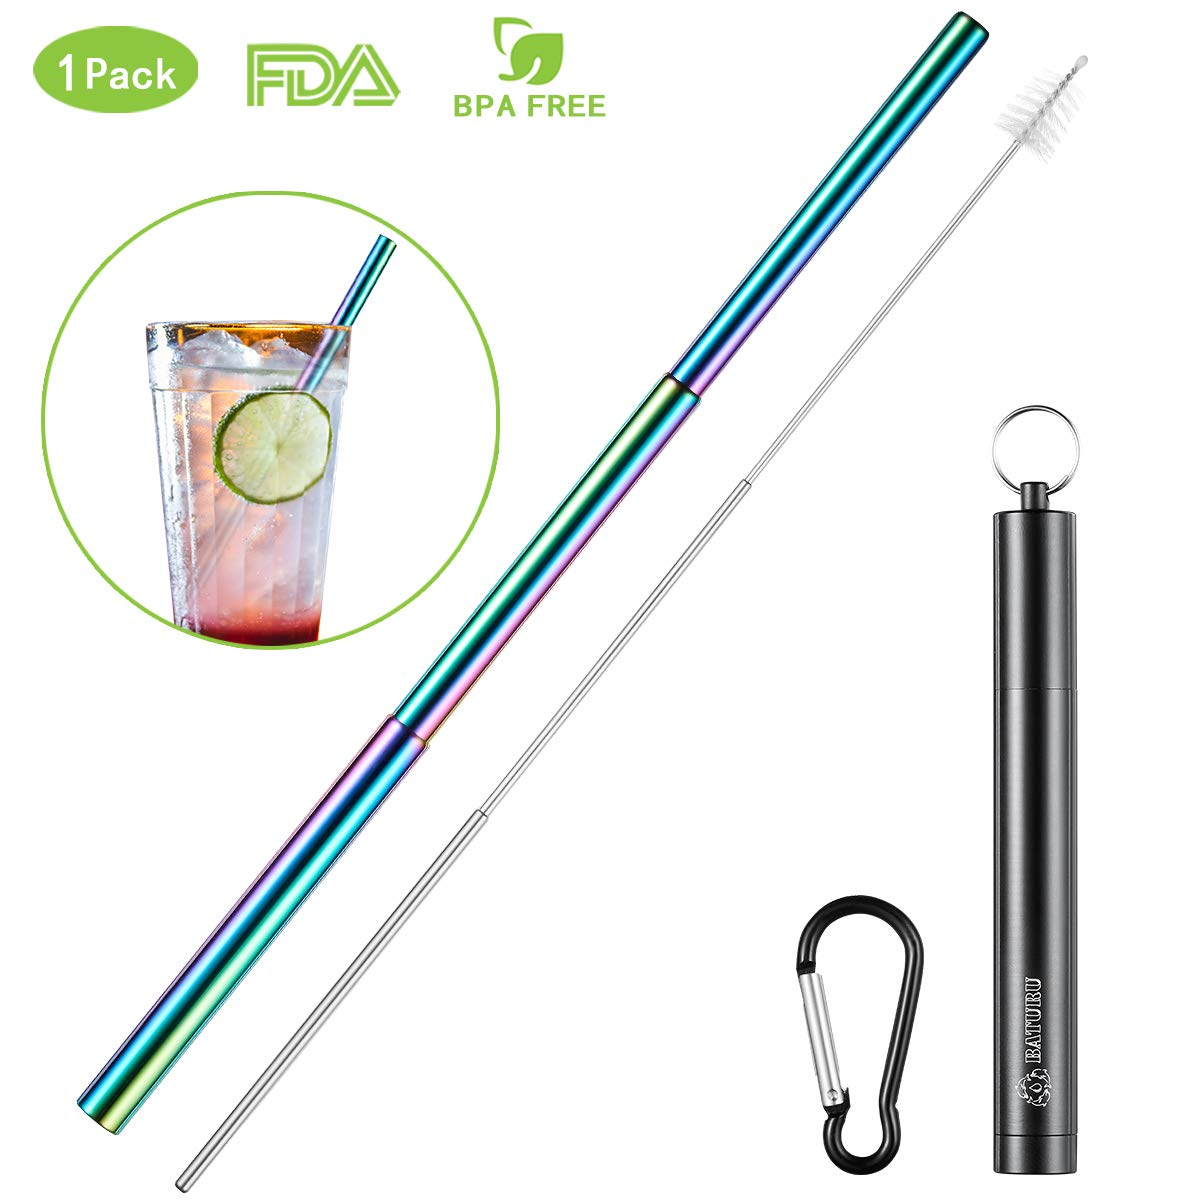 reusable collabsible stainless steel straw